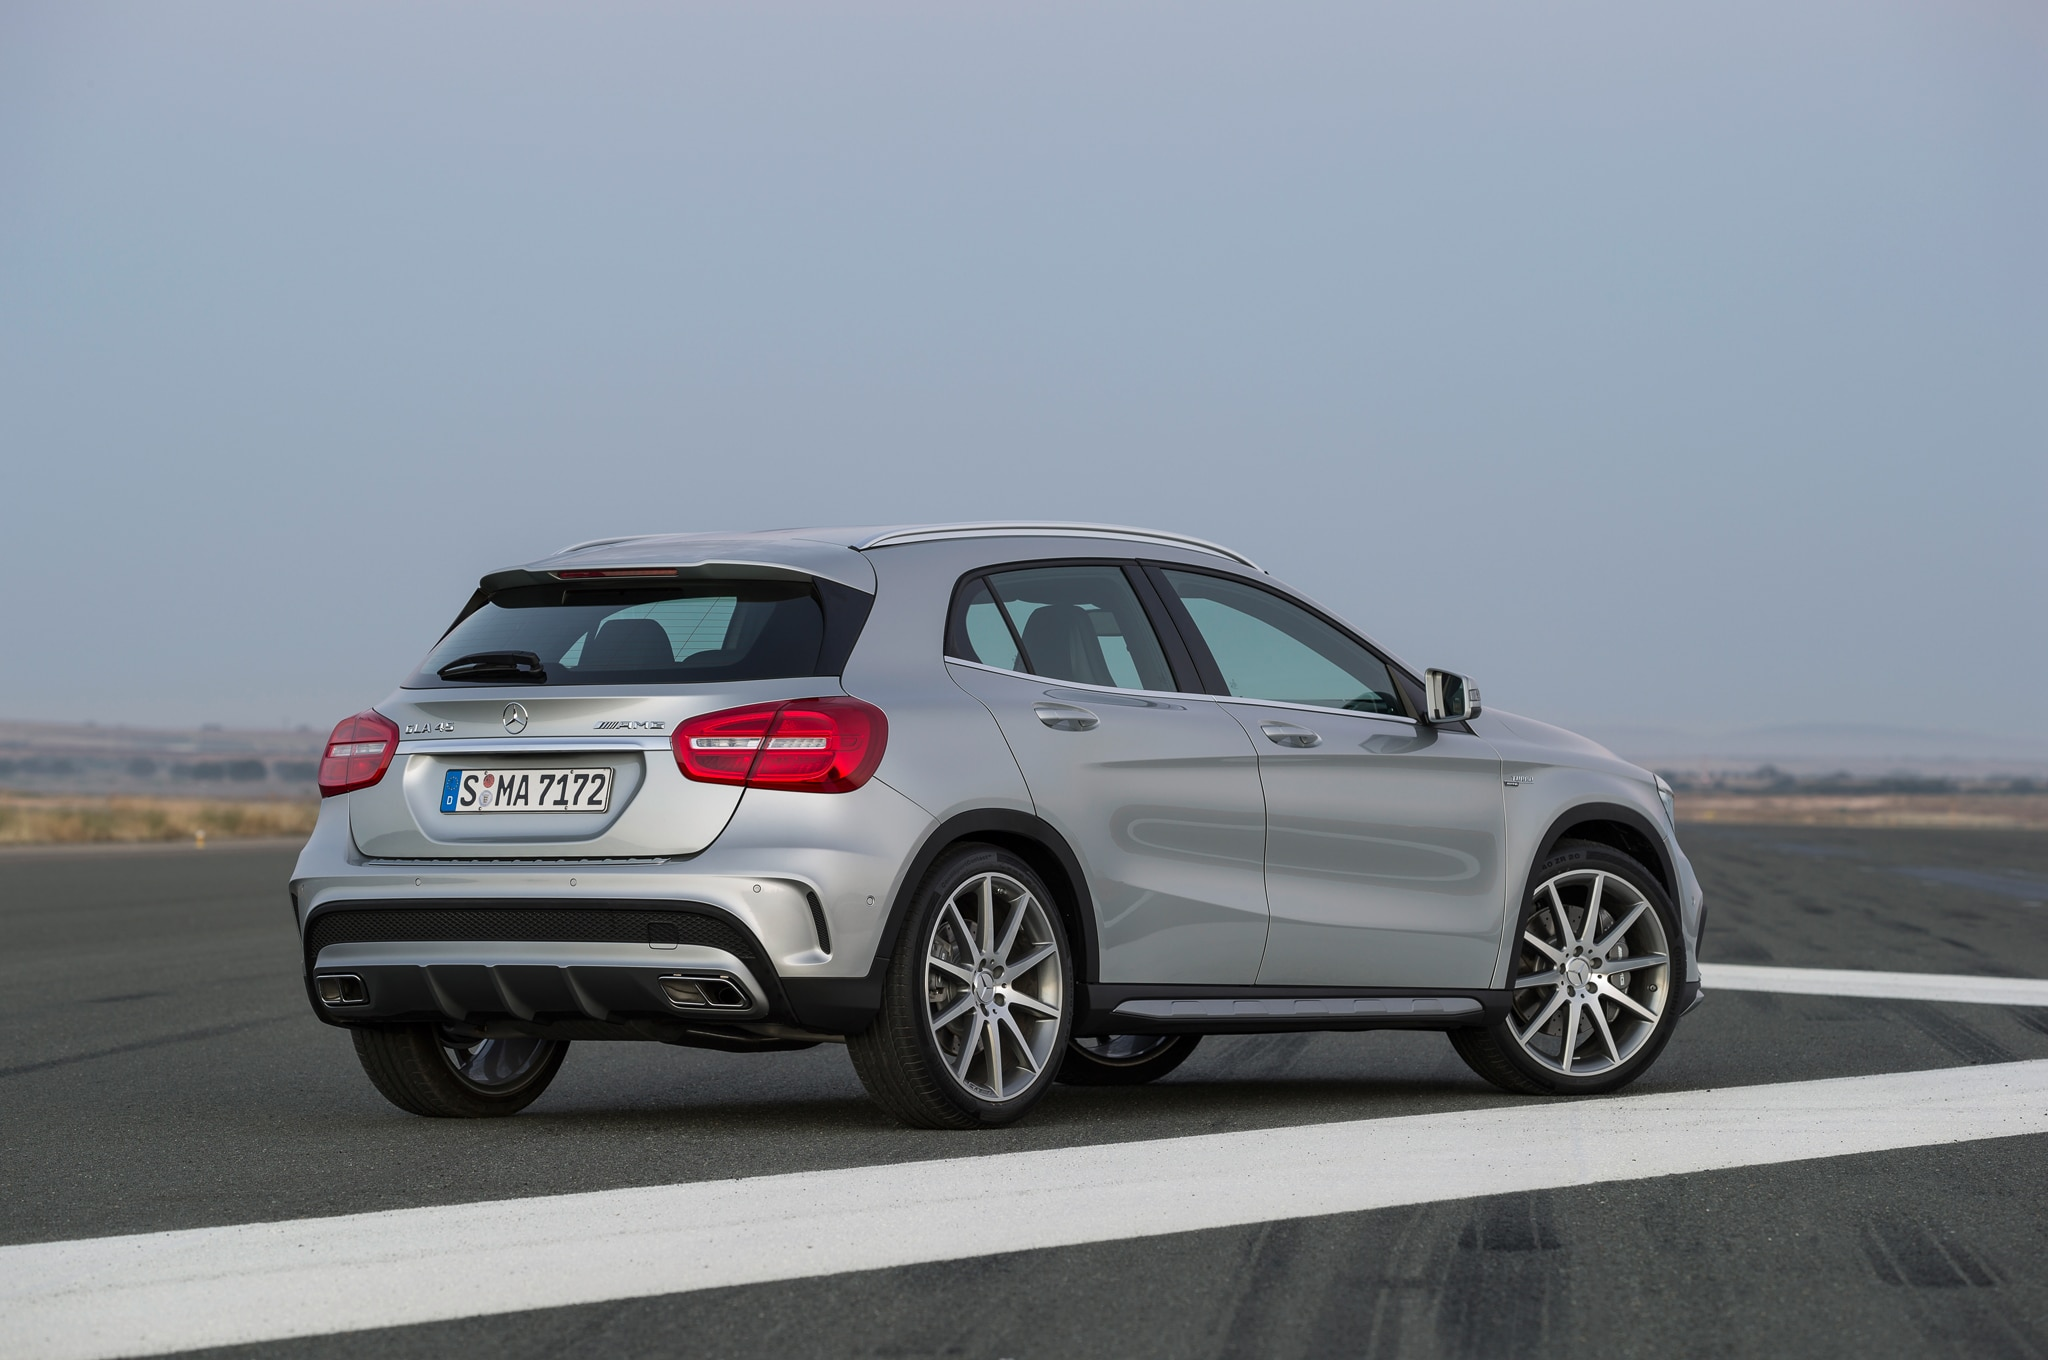 2015 mercedes benz gla class review automobile magazine for Mercedes benz gla 2015 price